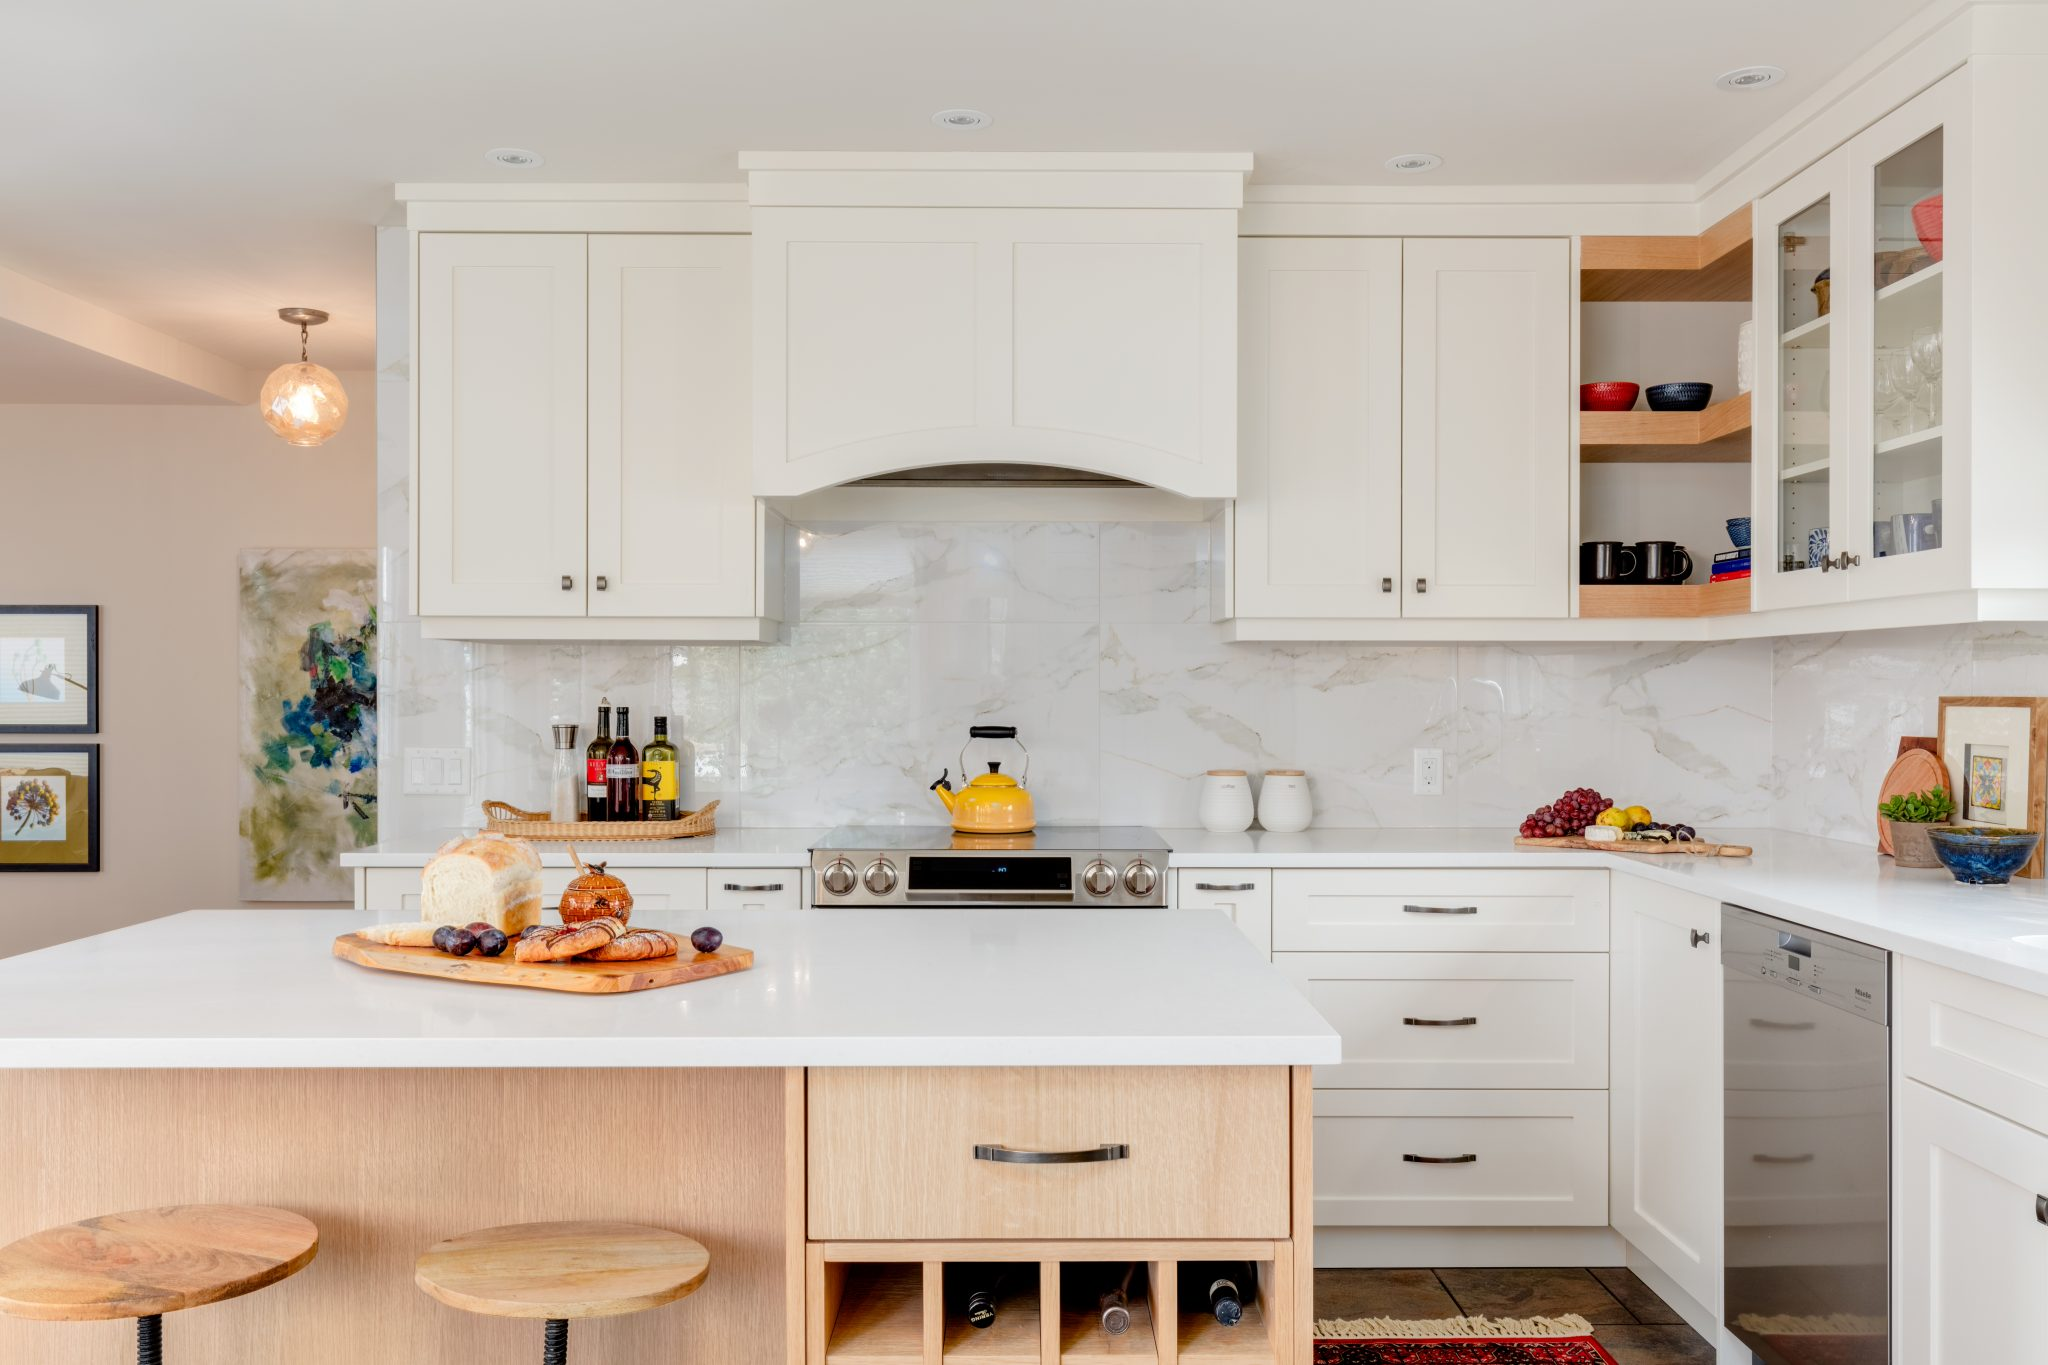 White Or Wood What S The Most Timeless Choice For Kitchen Cabinets Karen Fron Interior Design Calgary